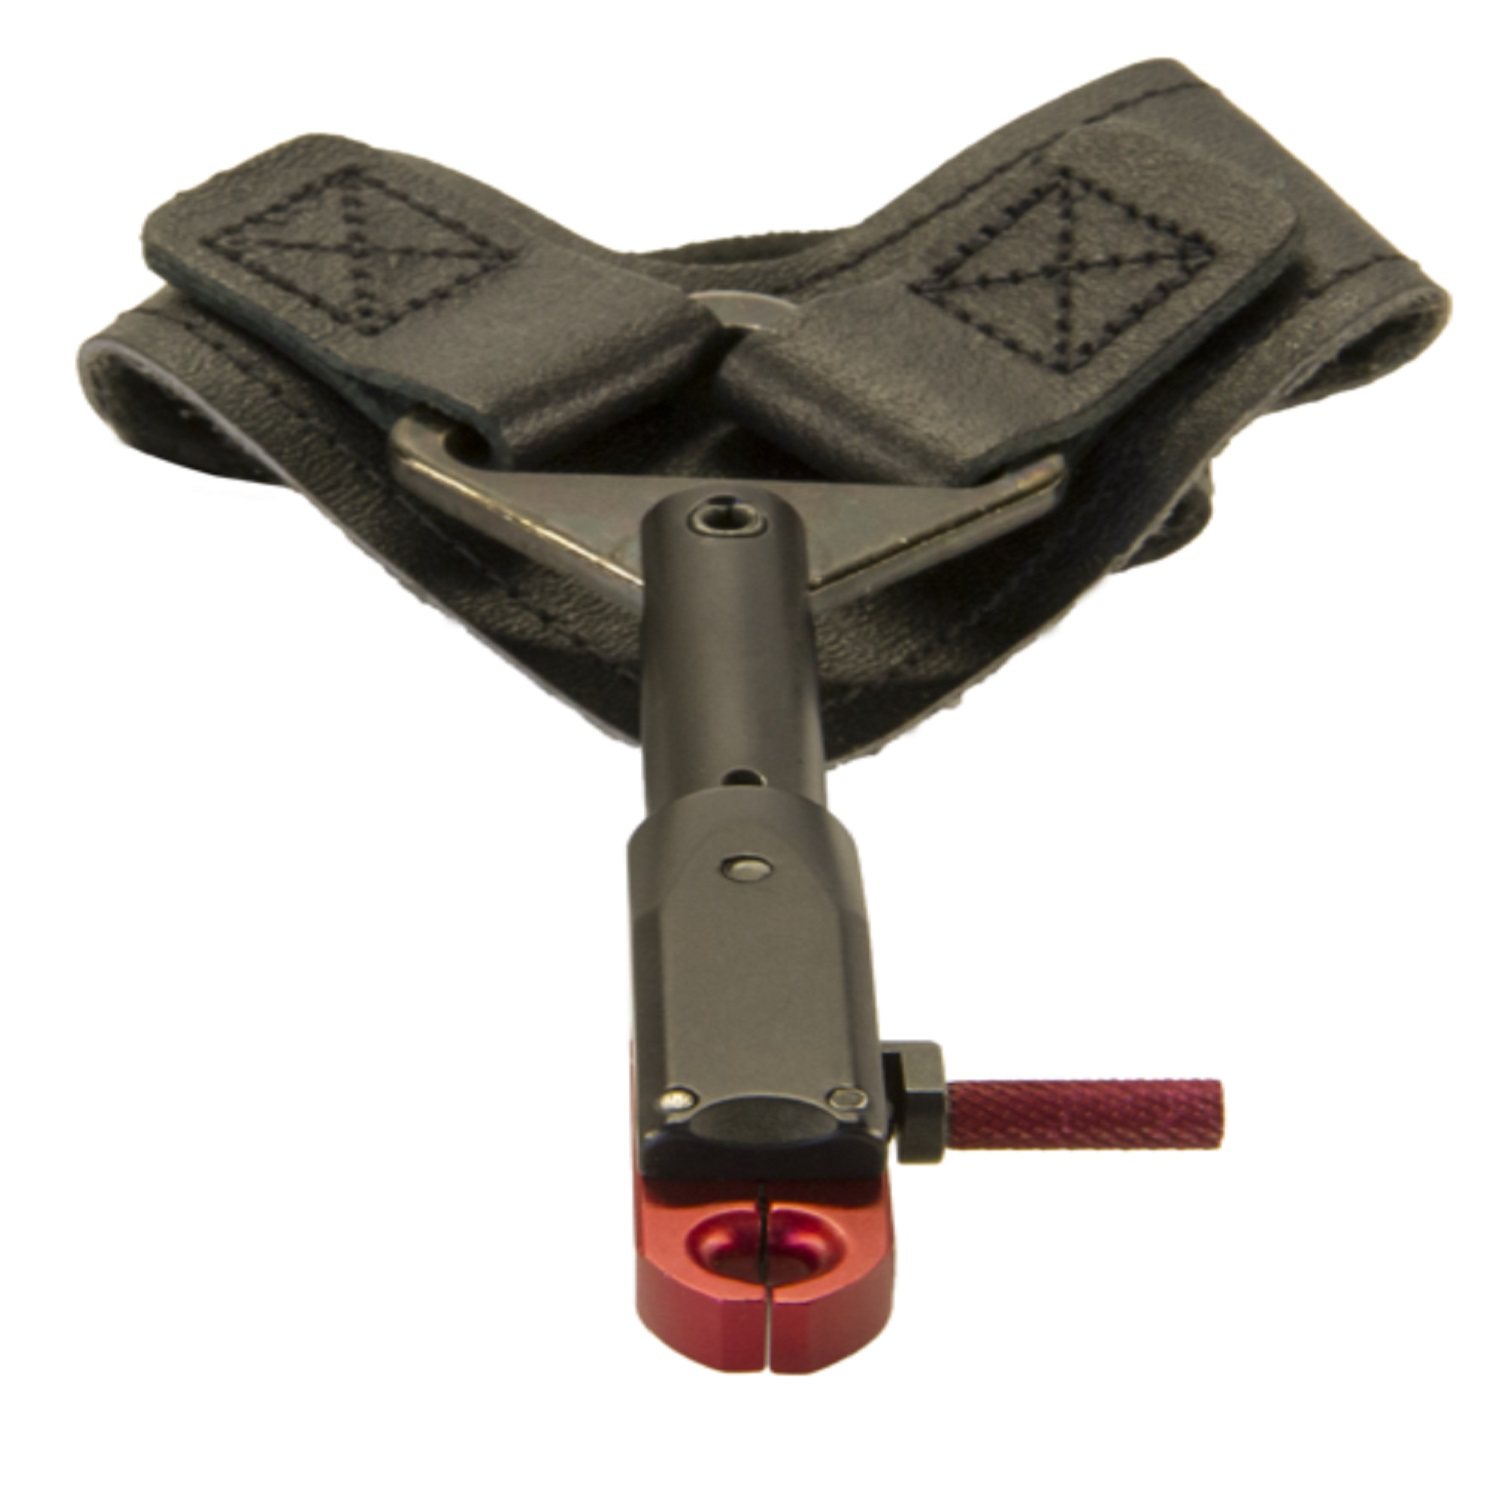 Scott Archery Caliper Release - Buckle Strap - Black